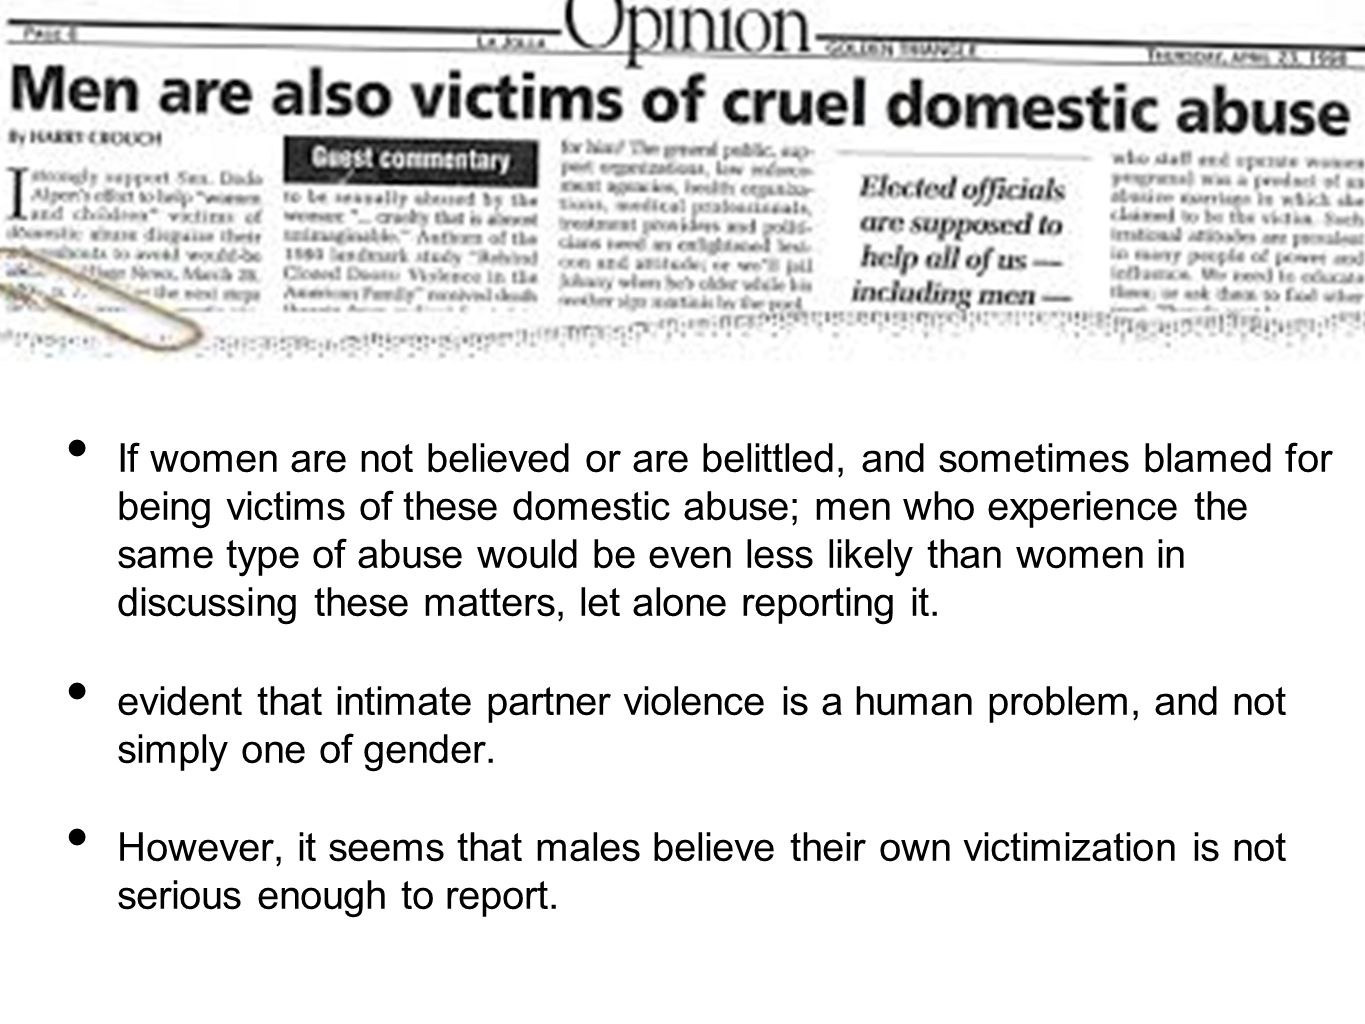 If women are not believed or are belittled, and sometimes blamed for being victims of these domestic abuse; men who experience the same type of abuse